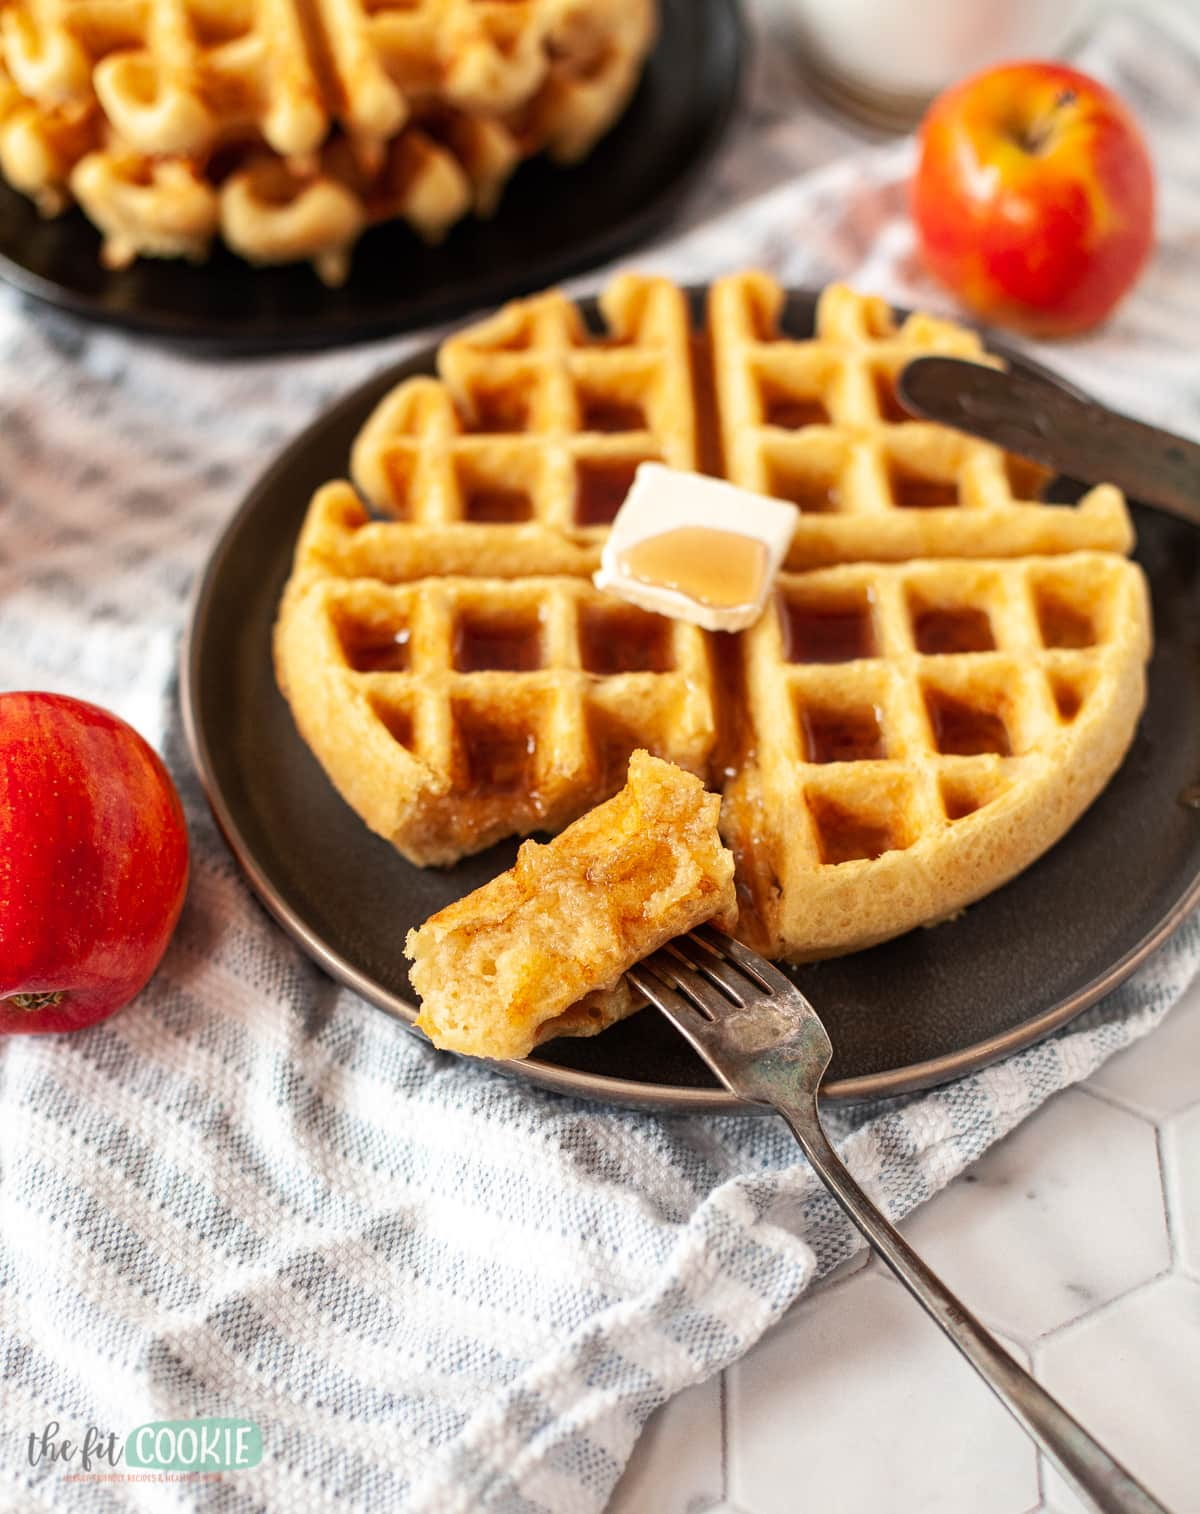 gluten free waffles with homemade syrup on top